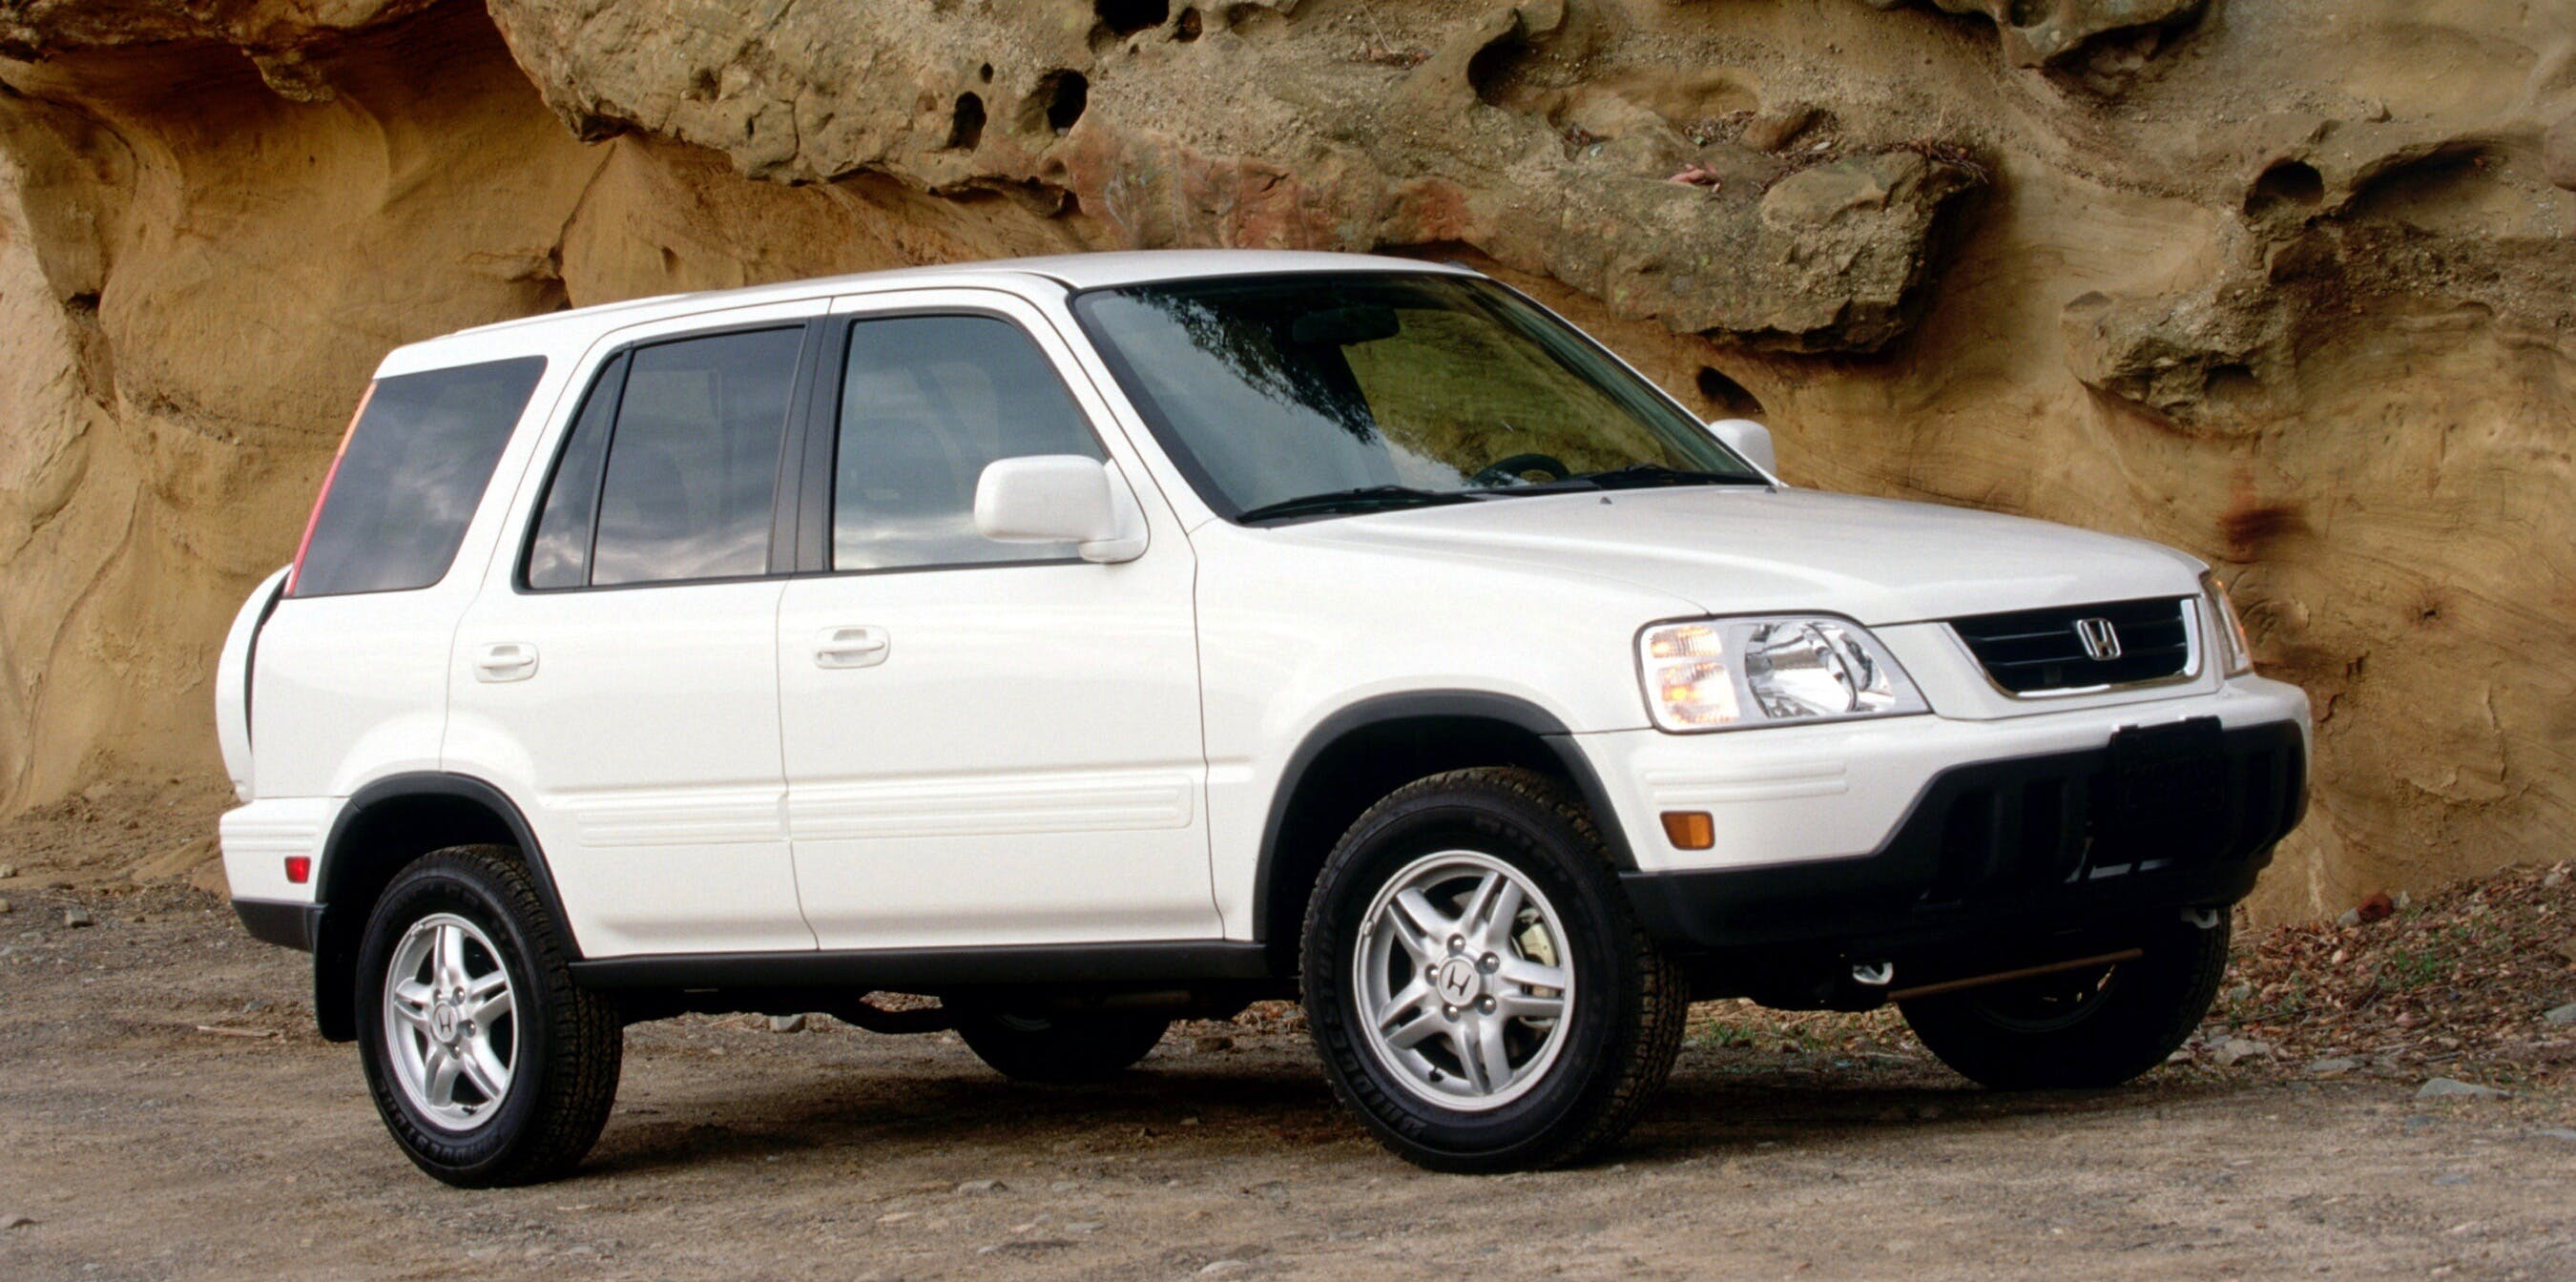 Car Recall: Honda and Acura Vehicles for New Takata Airbag Issue